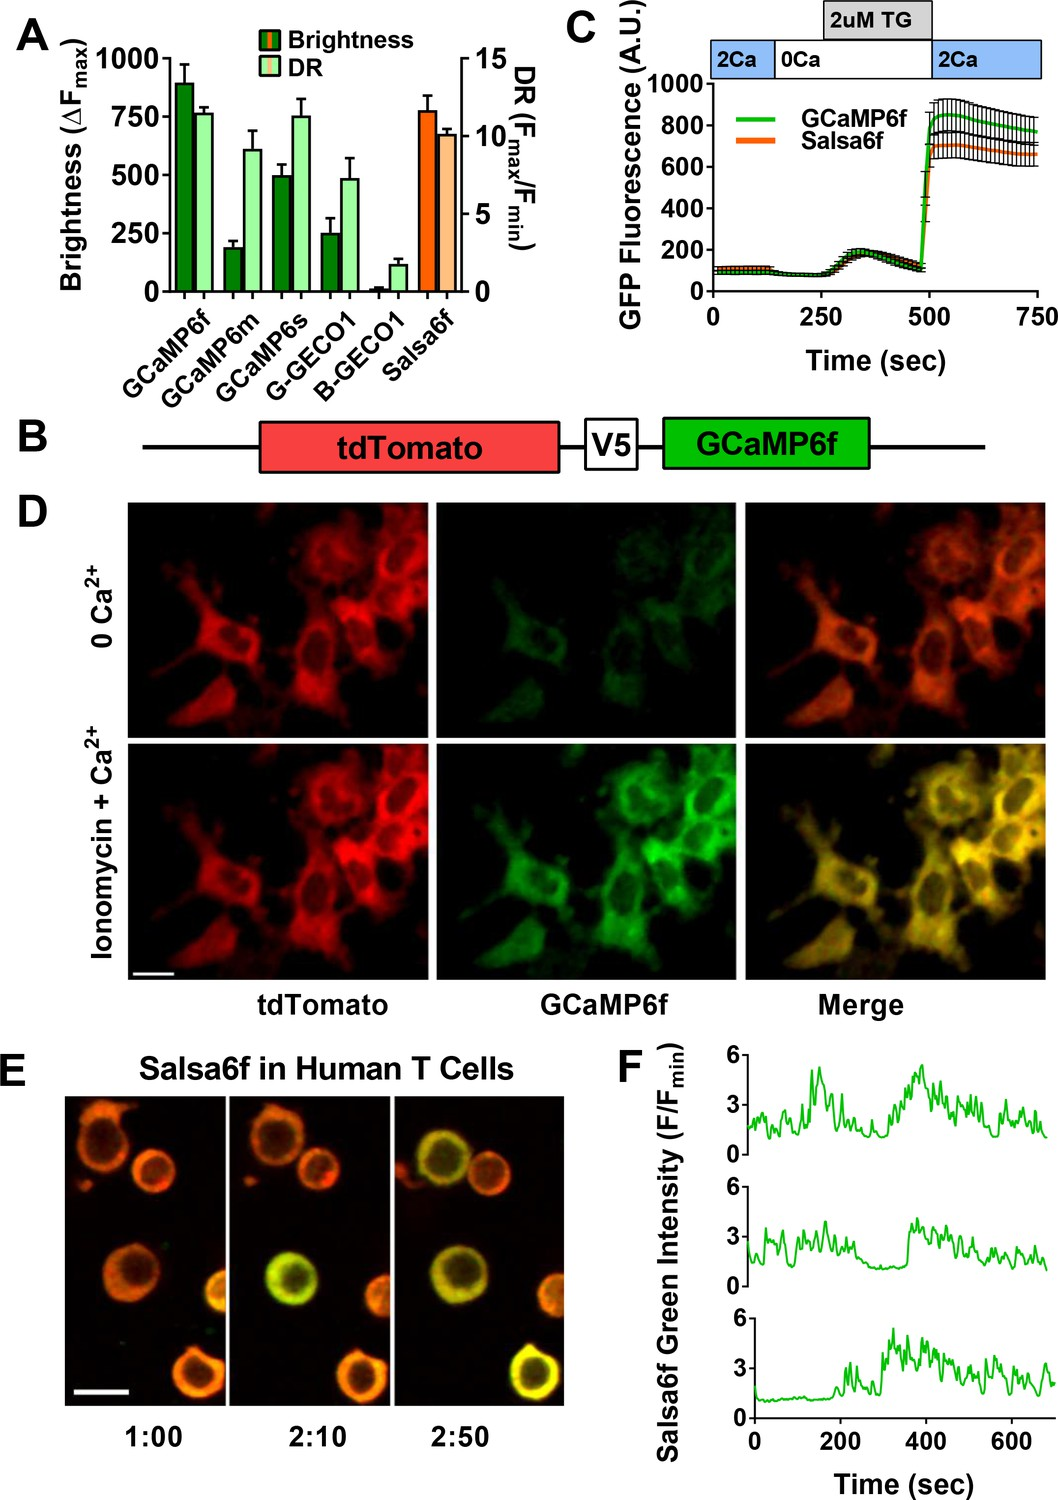 T-cell calcium dynamics visualized in a ratiometric tdTomato